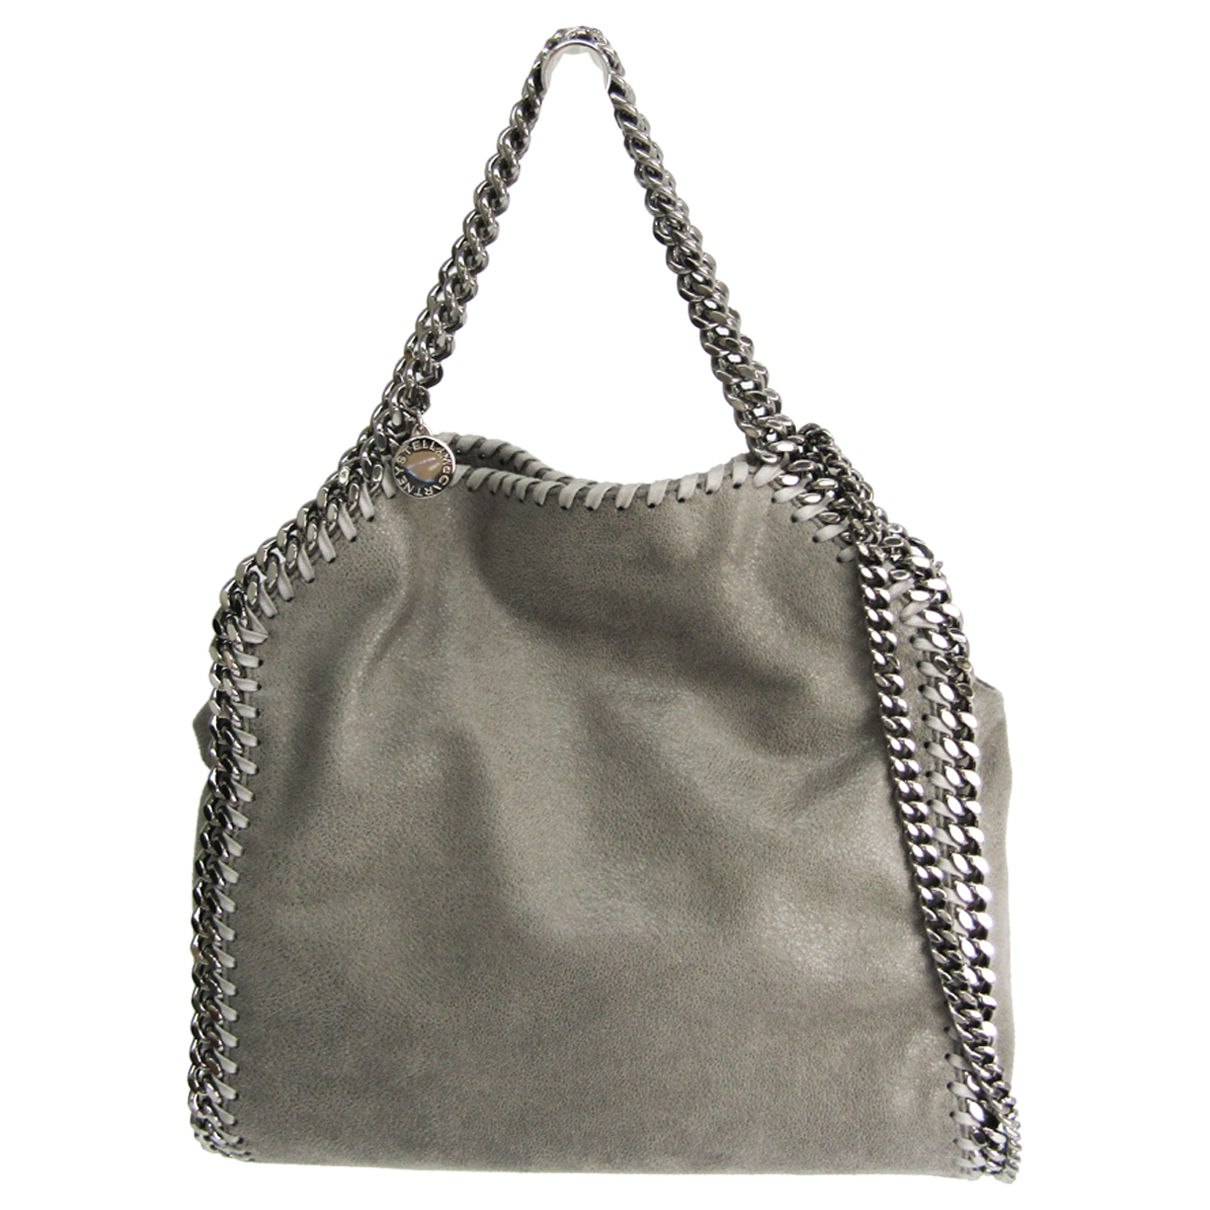 Stella Mccartney \N Handtasche in  Grau Polyester